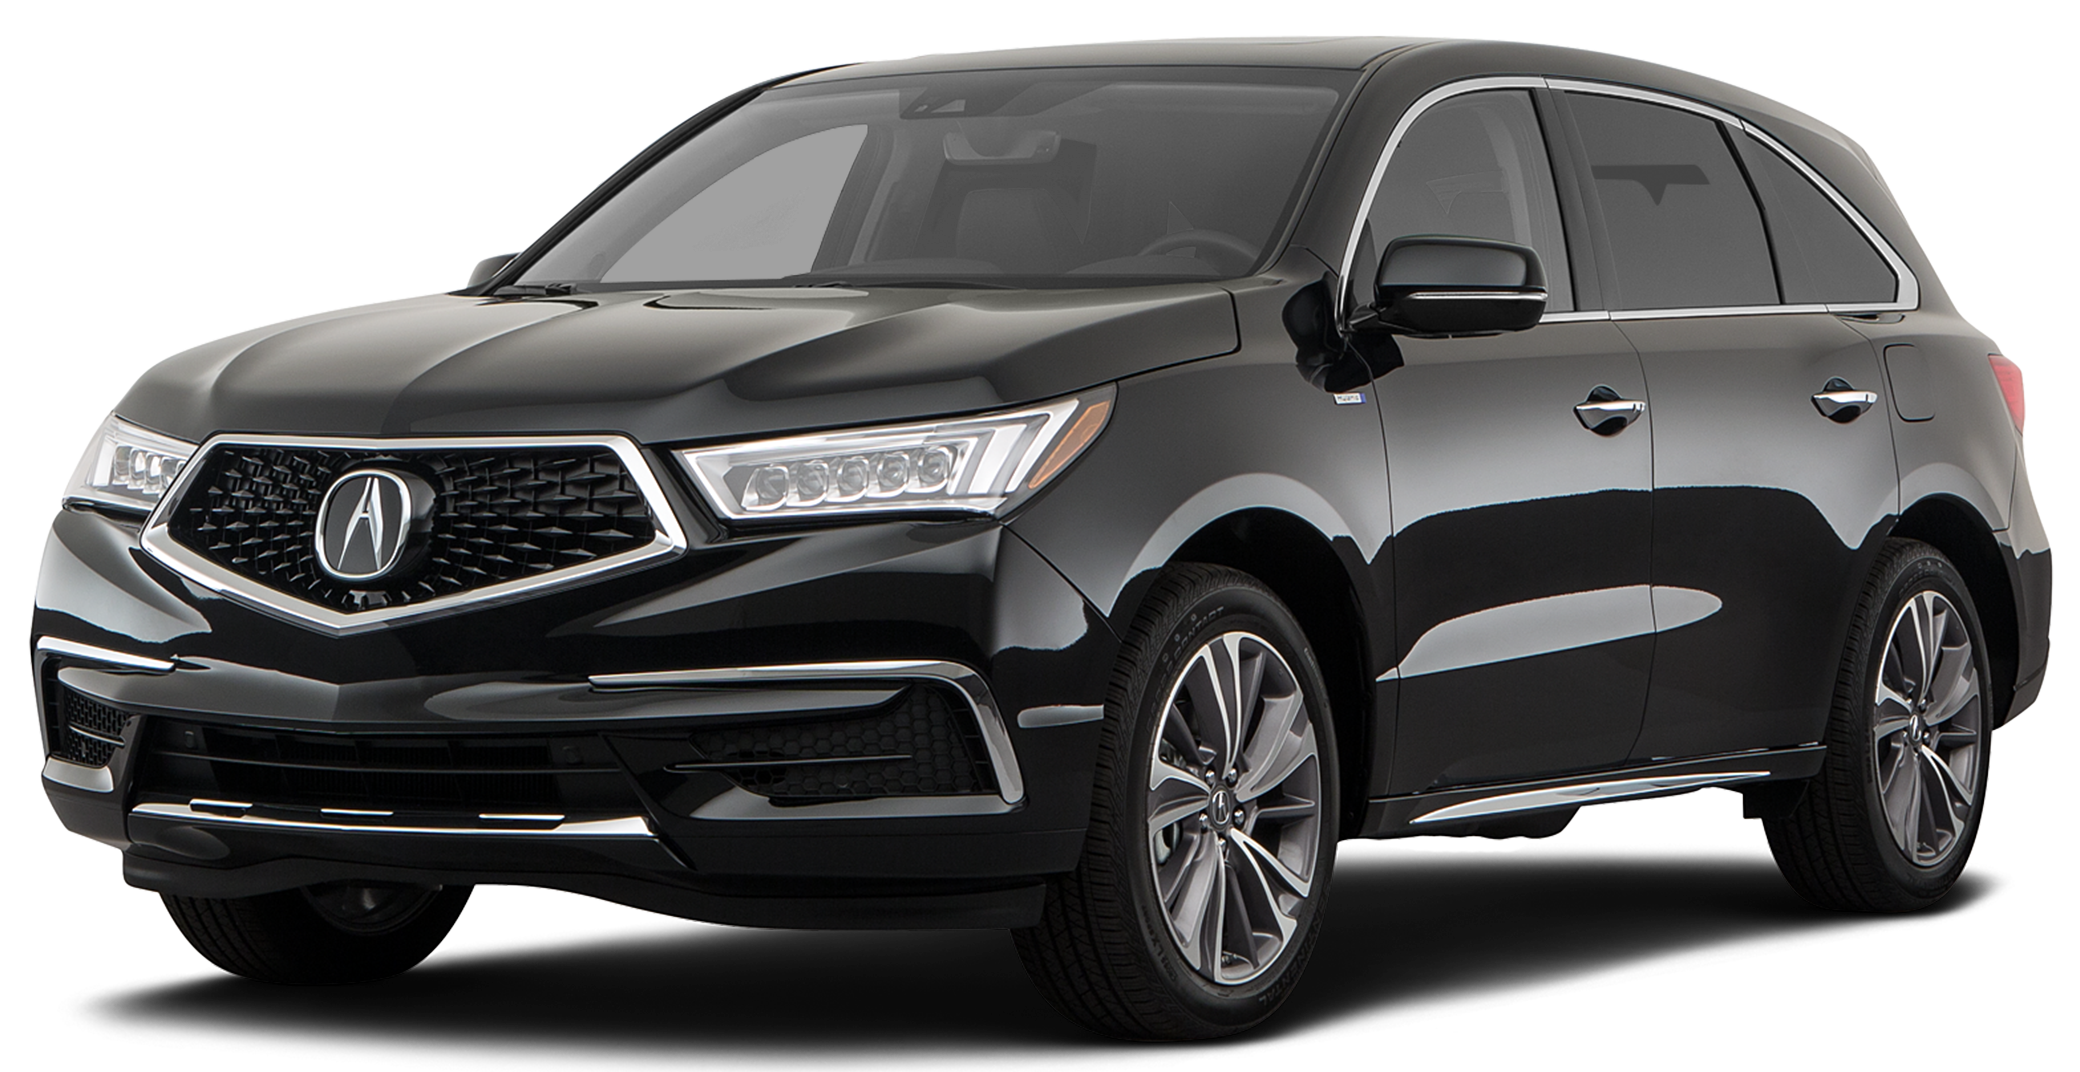 New 2019 Acura MDX Sport Hybrid at Acura of Honolulu